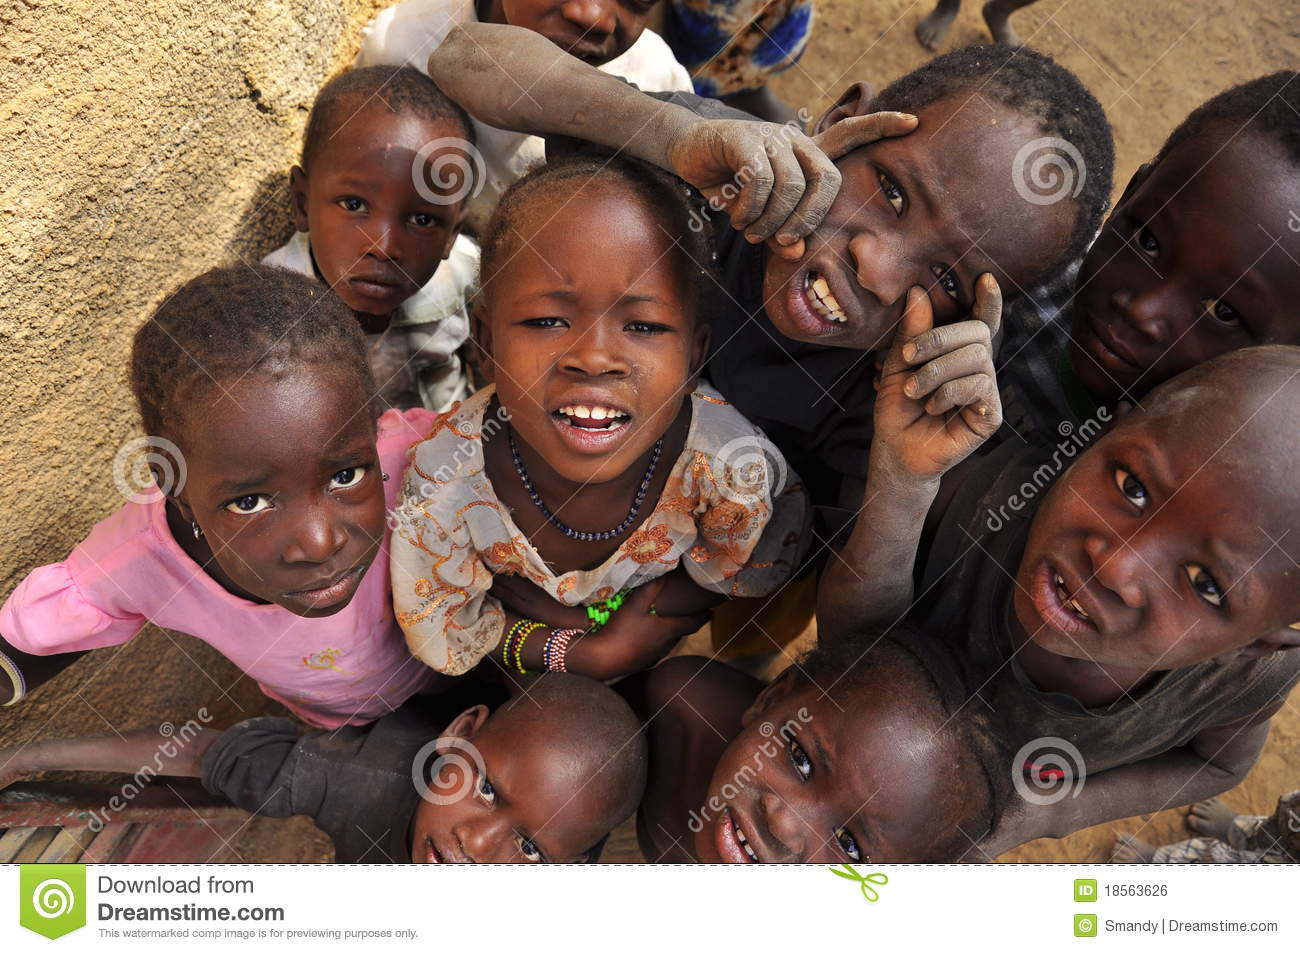 Group of black children making faces and looking curious in a village of niger west africa